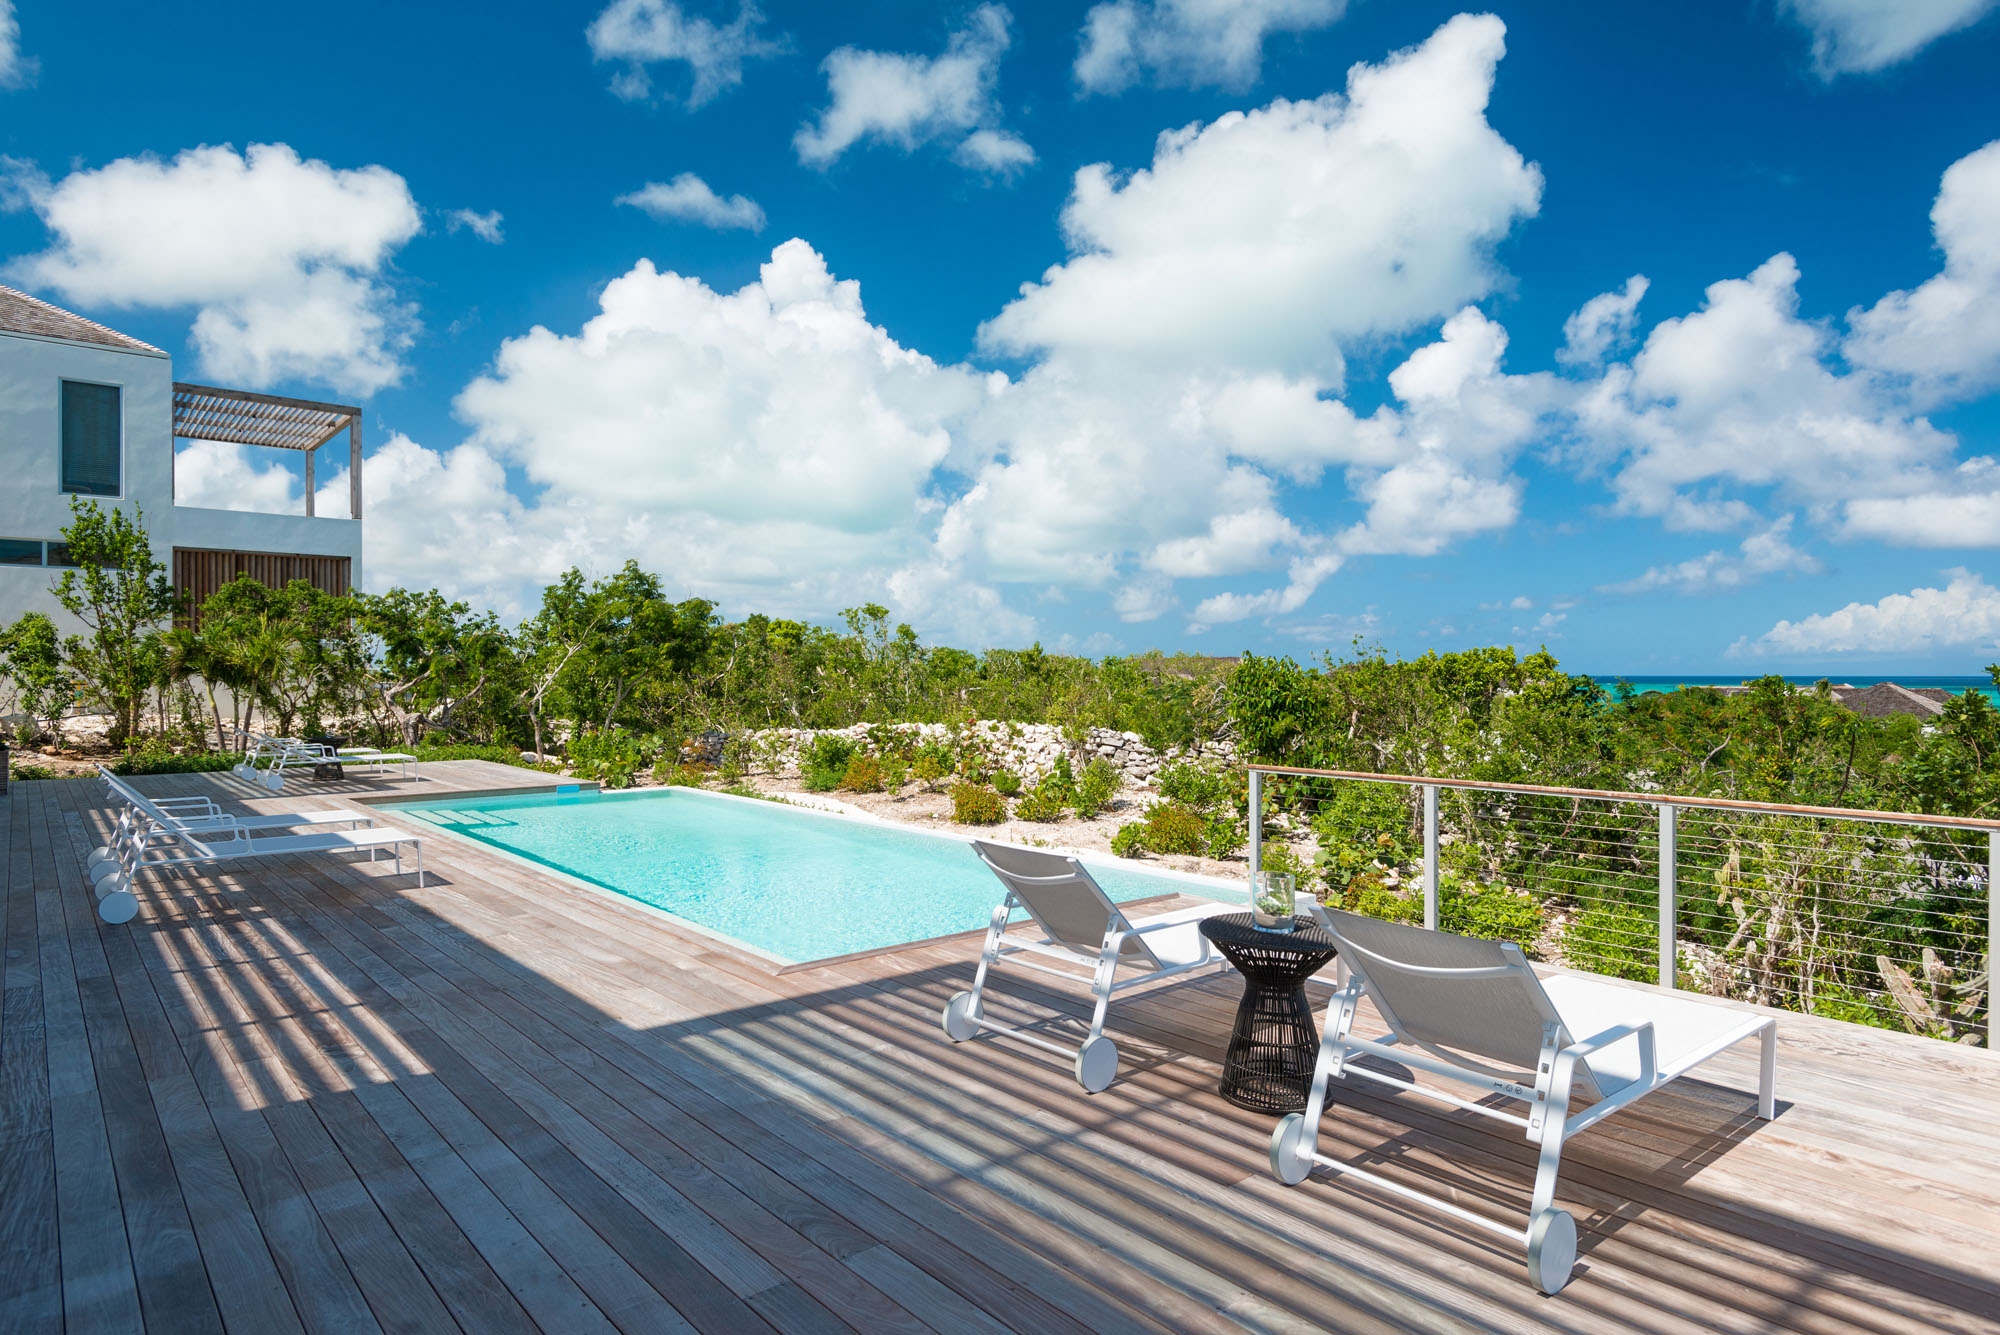 These Turks and Caicos luxury ocean view villa rentals have spacious bathrooms with top of the line fixtures and fittings.